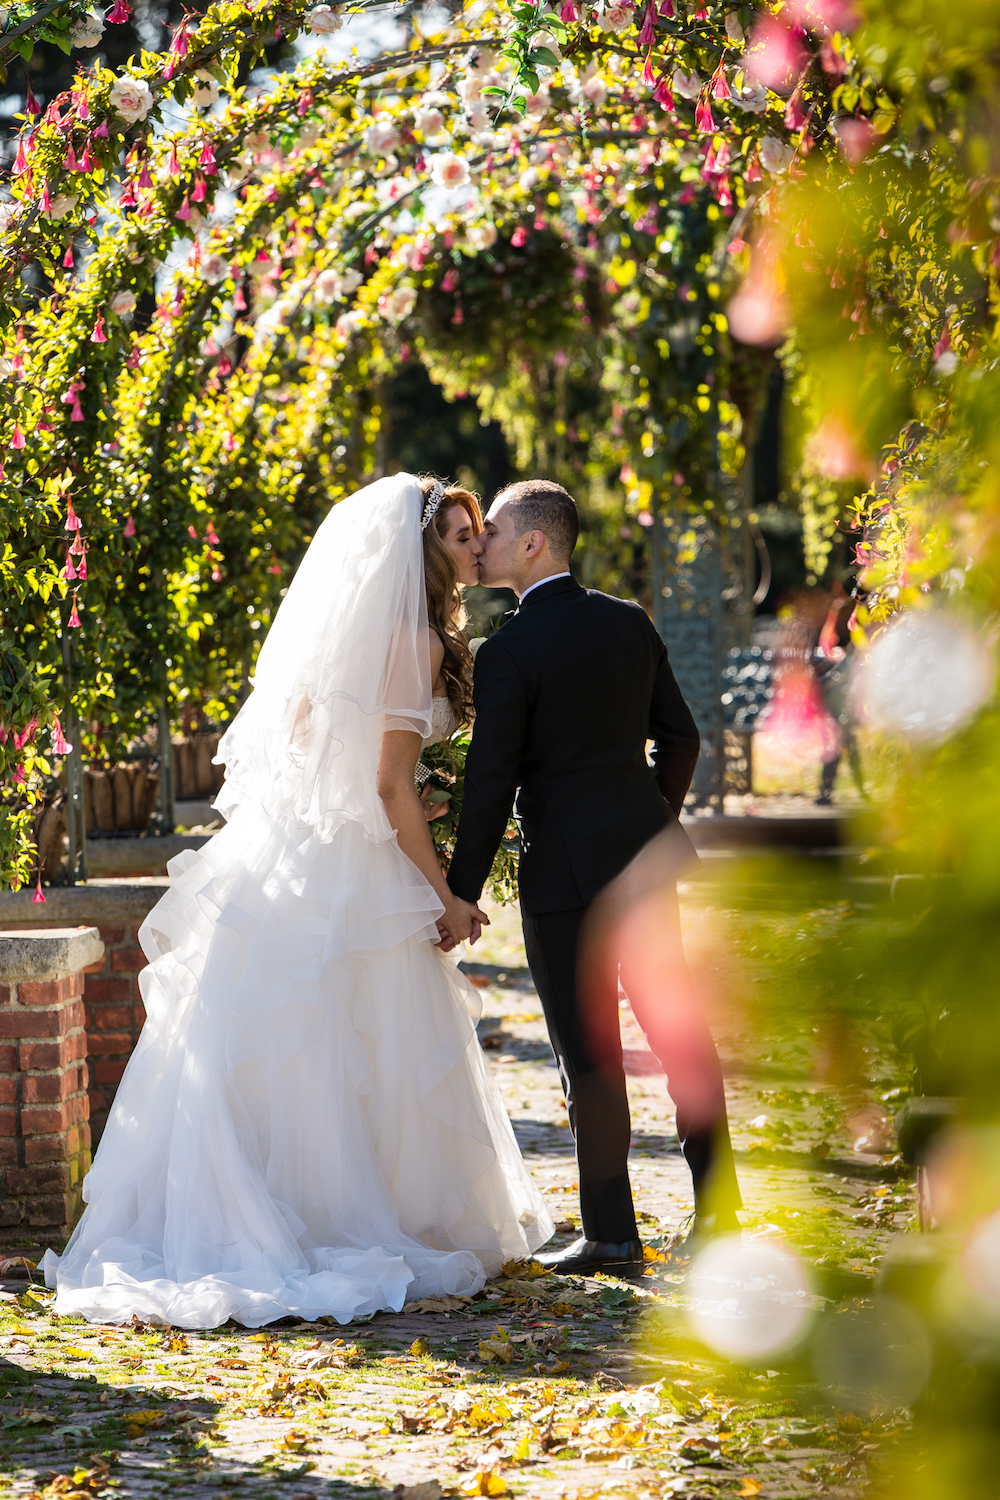 nada&amro-kissing-in-garden-archway-outside-wedding-photography-nj